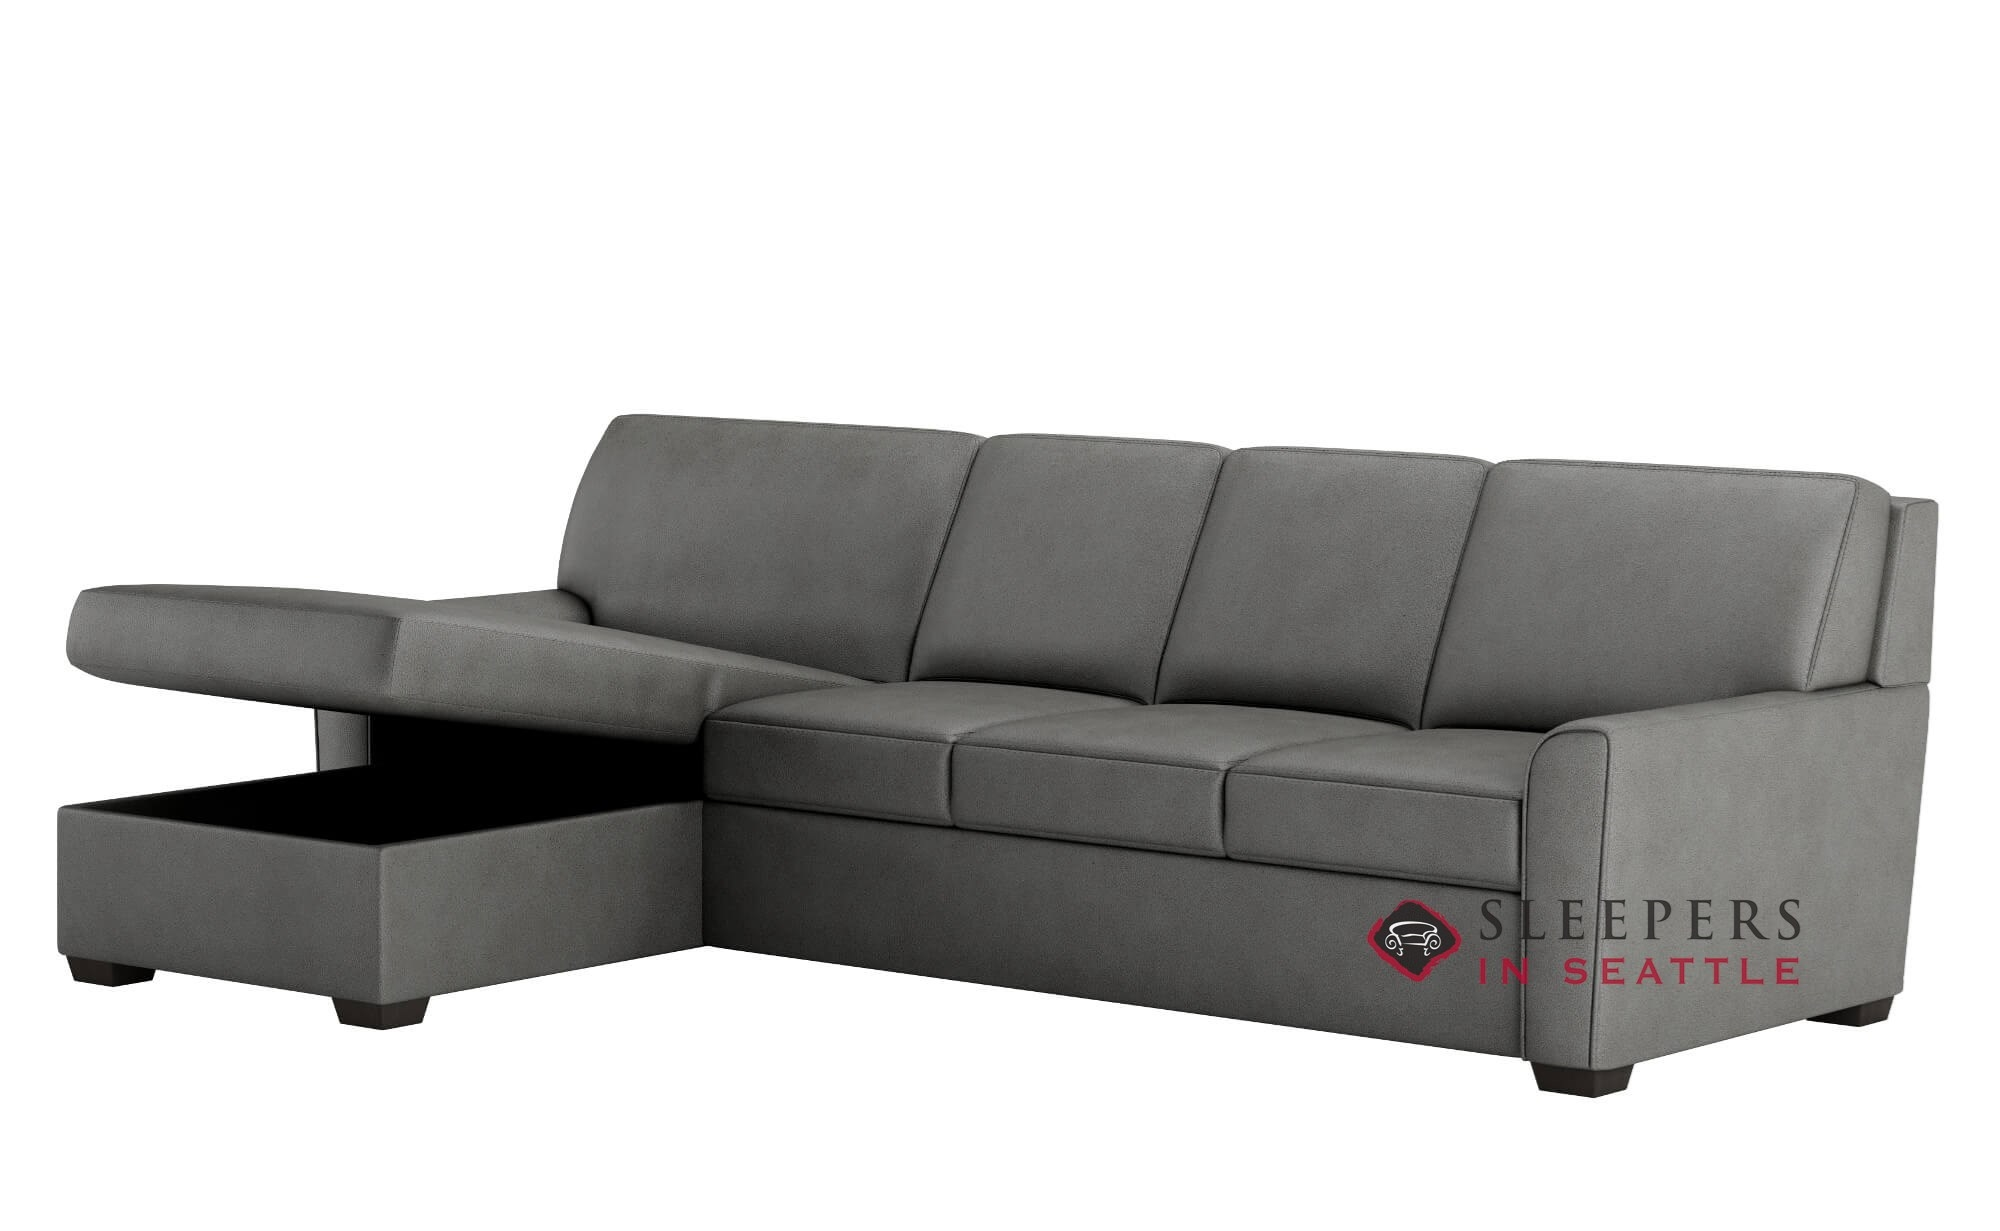 american leather sleep sofa montreal ash black faux linen oversized sectional customize and personalize klein multiple sizes available